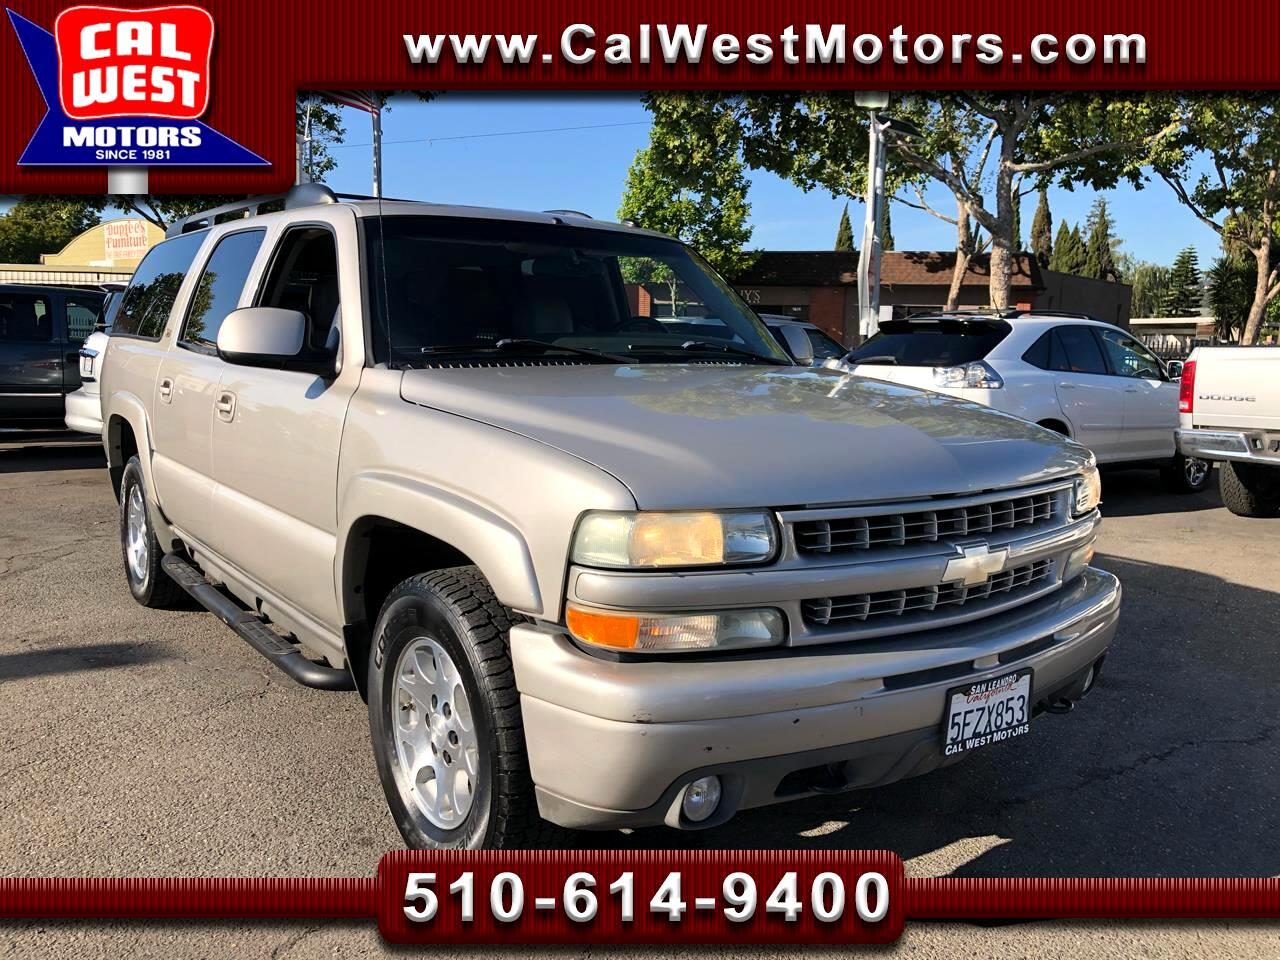 2004 Chevrolet Suburban 4X4 Z71Pkg 3Rows Leather BOSE VeryClean GreatMtnce